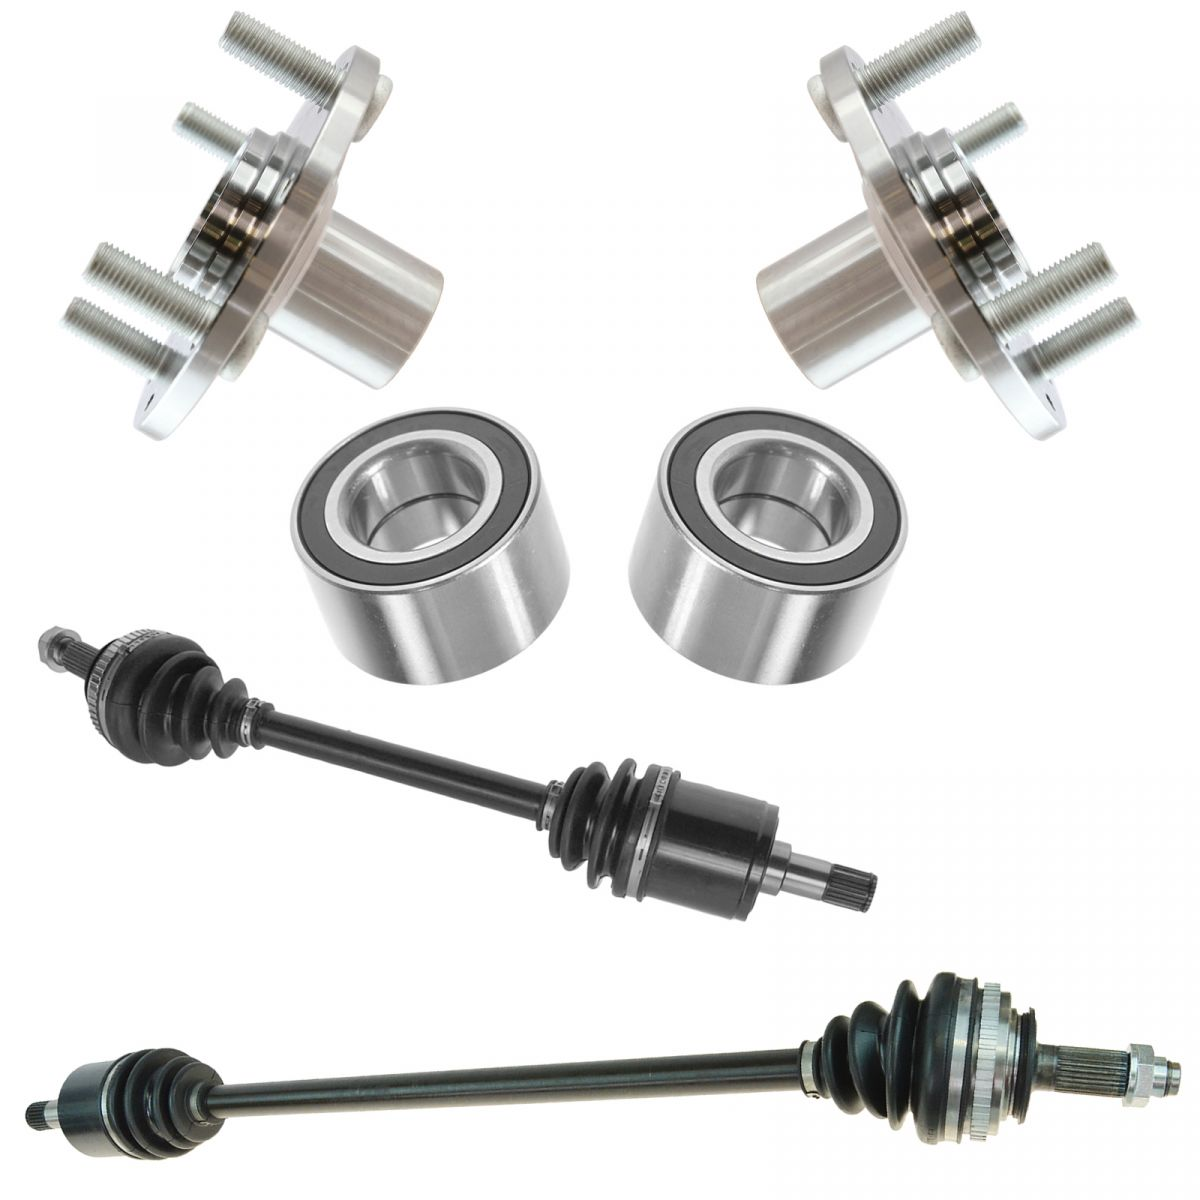 Front CV Axle Shaft Assembly Wheel Hub Bearing Kit Set 6pc New for Civic Del Sol